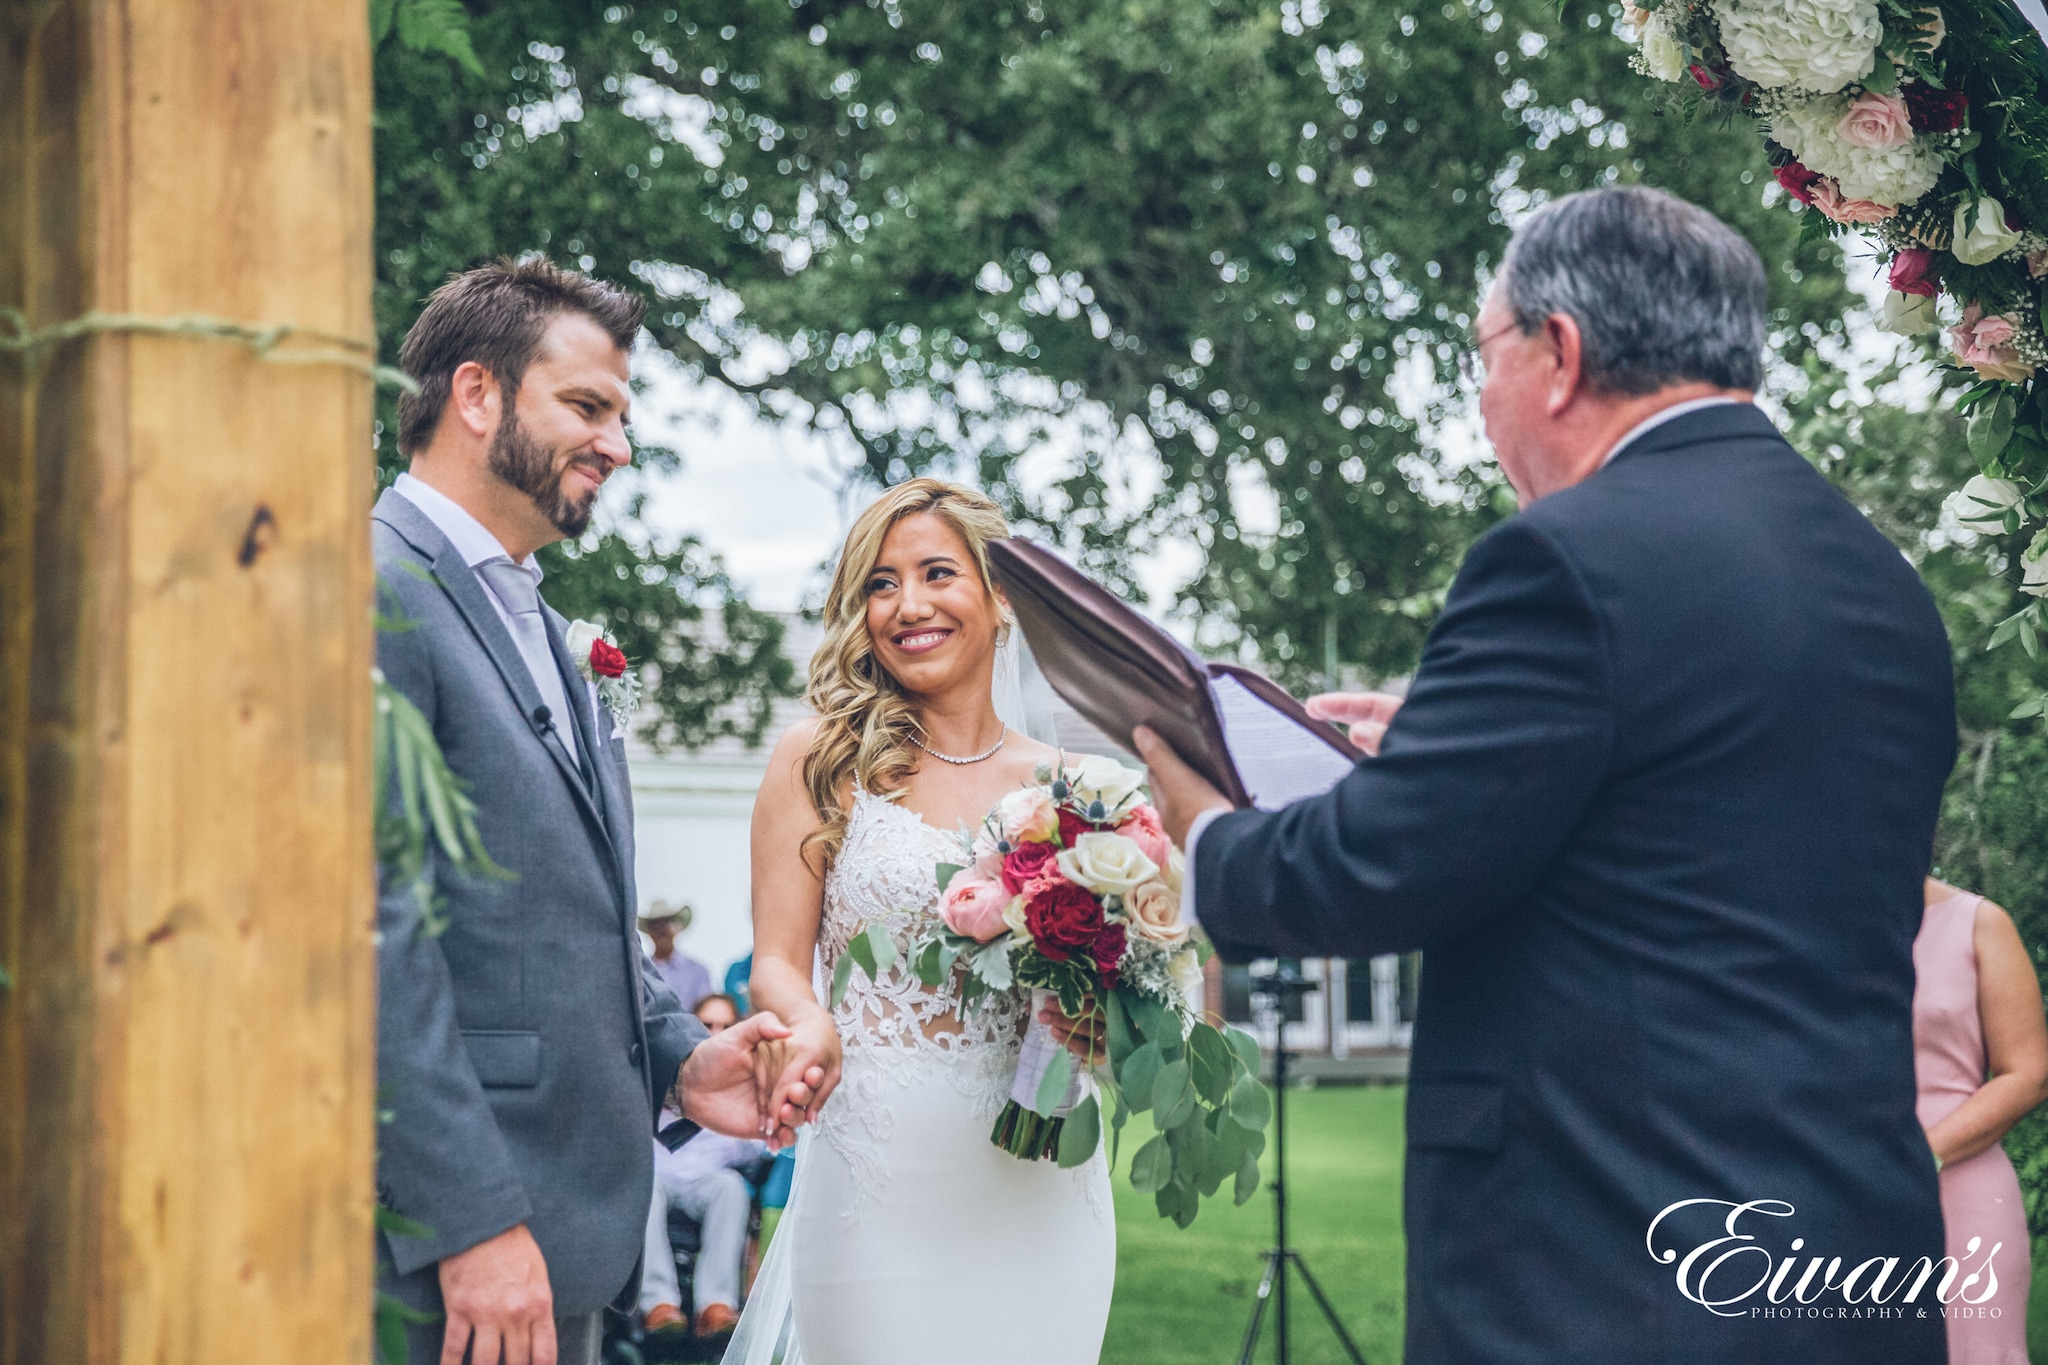 man in black suit jacket and woman in white wedding dress